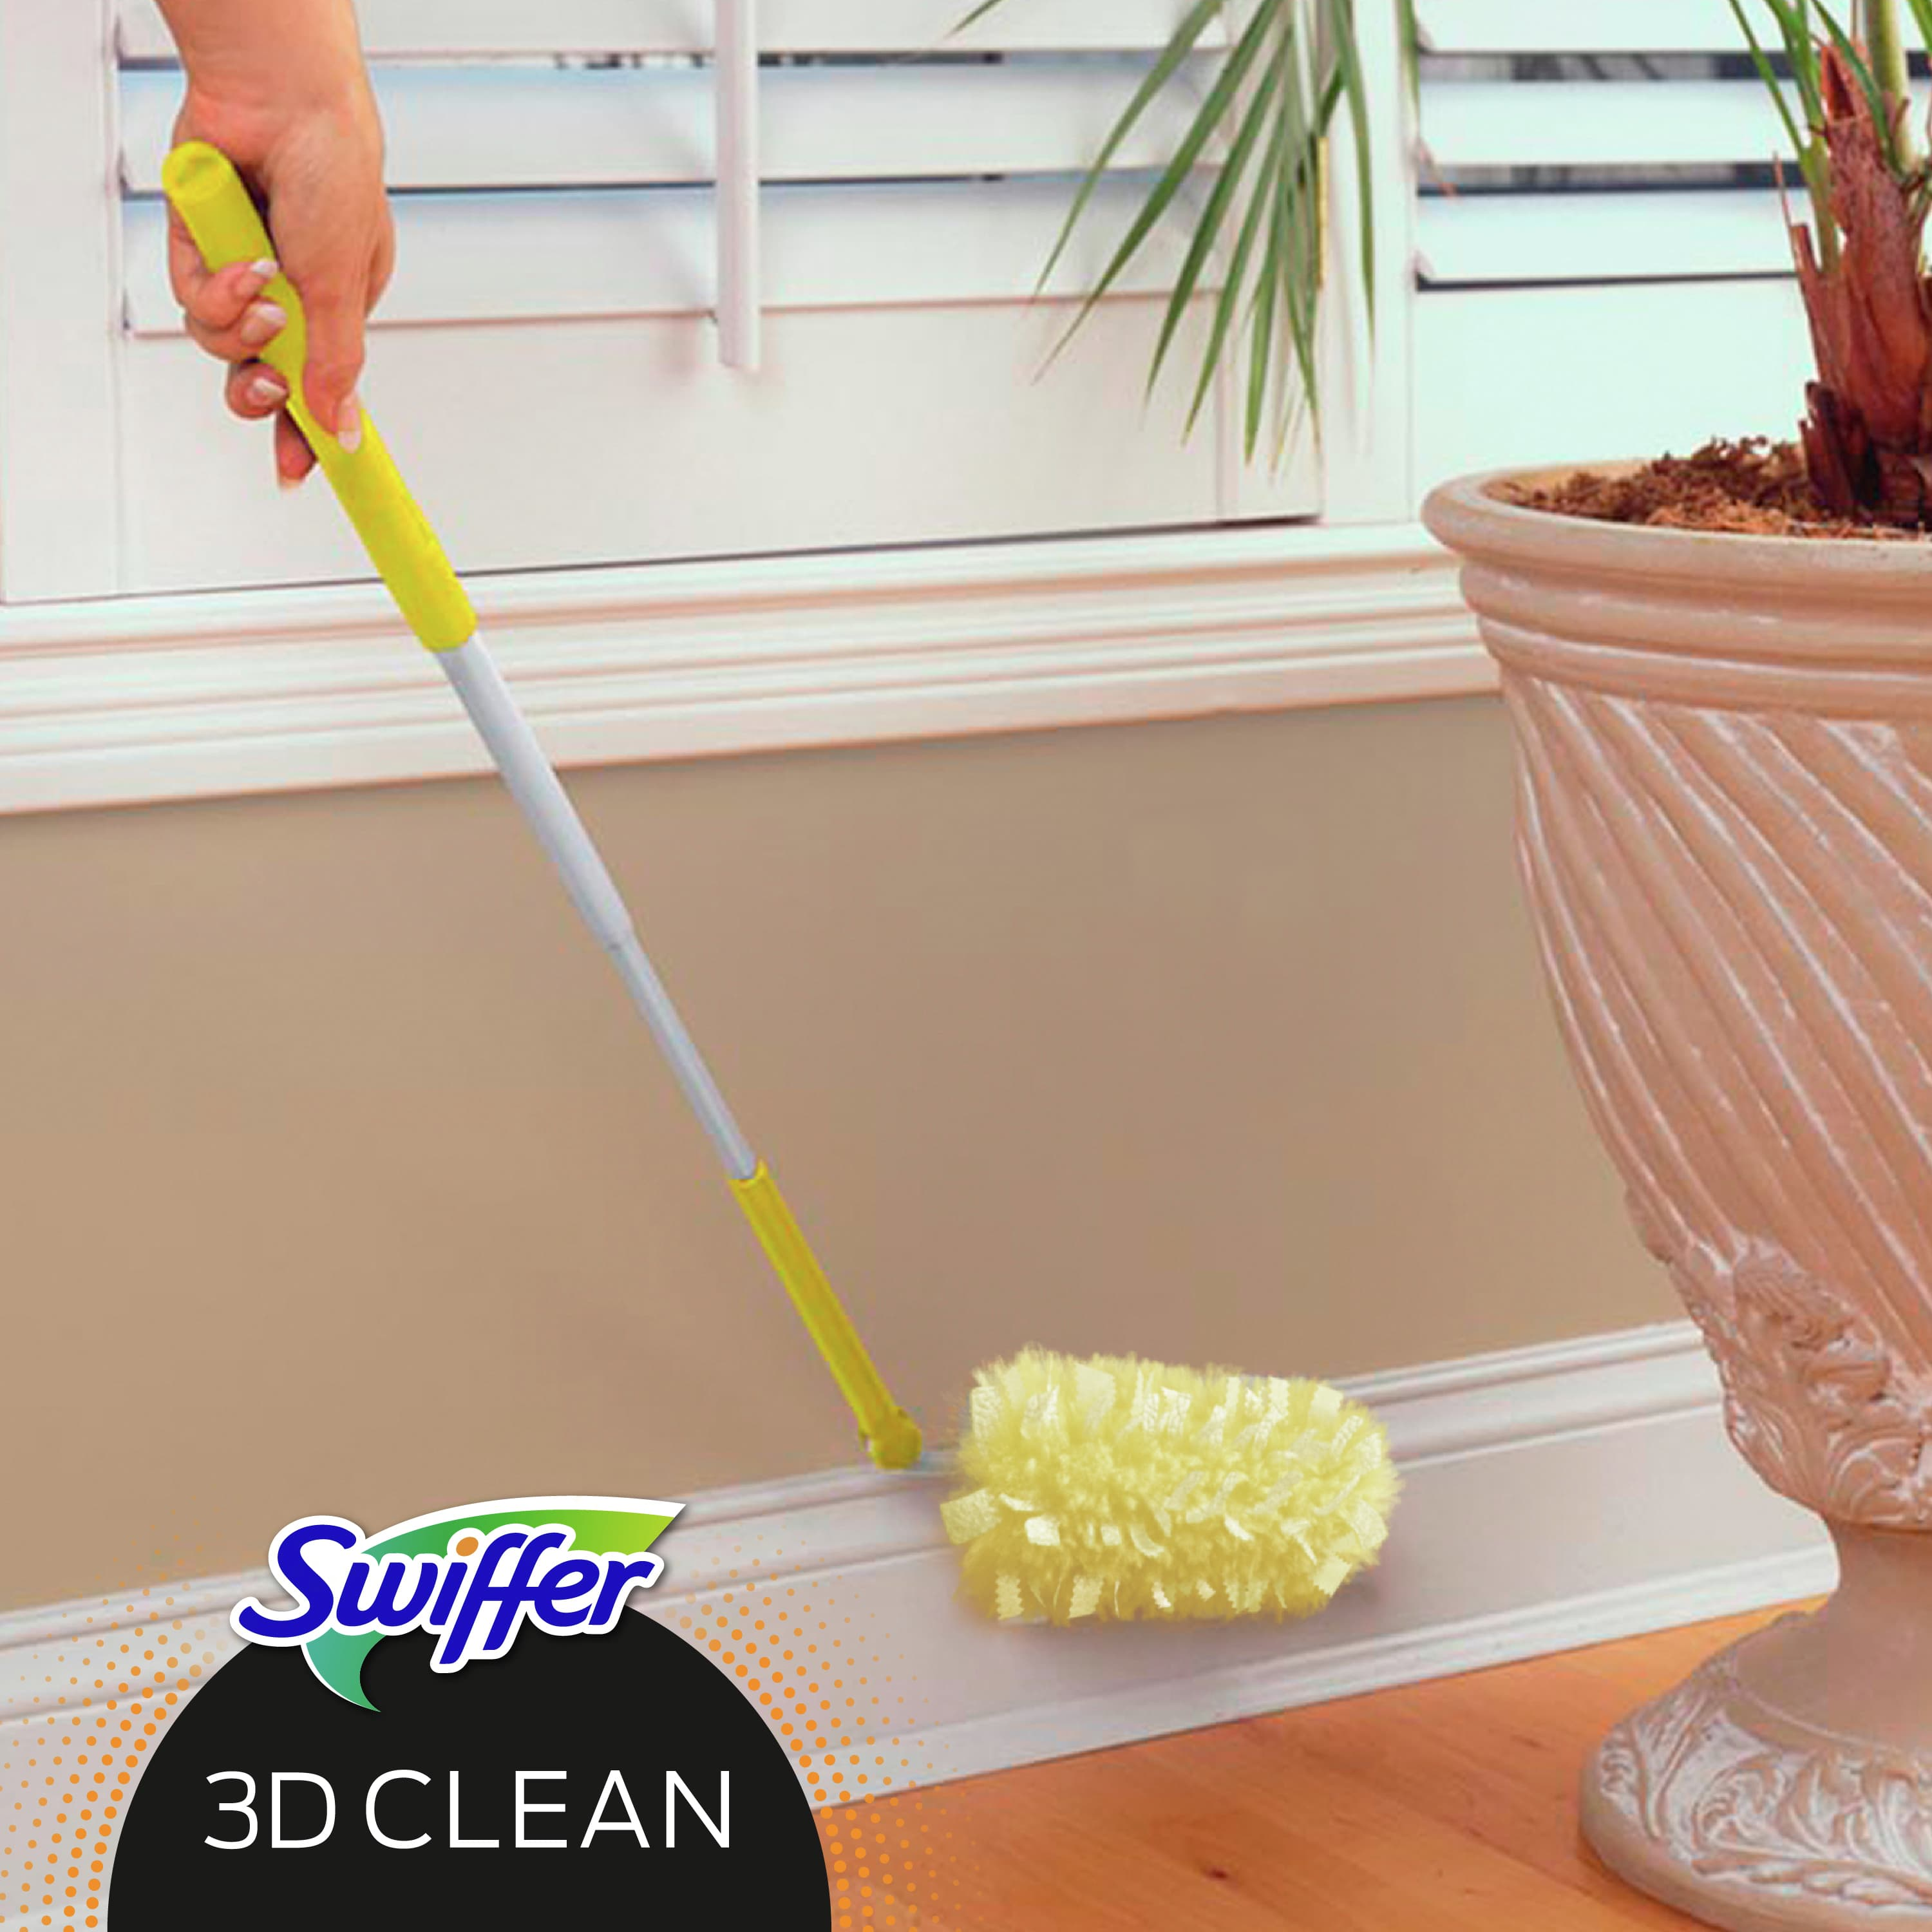 Plumeau Swiffer 3D clean